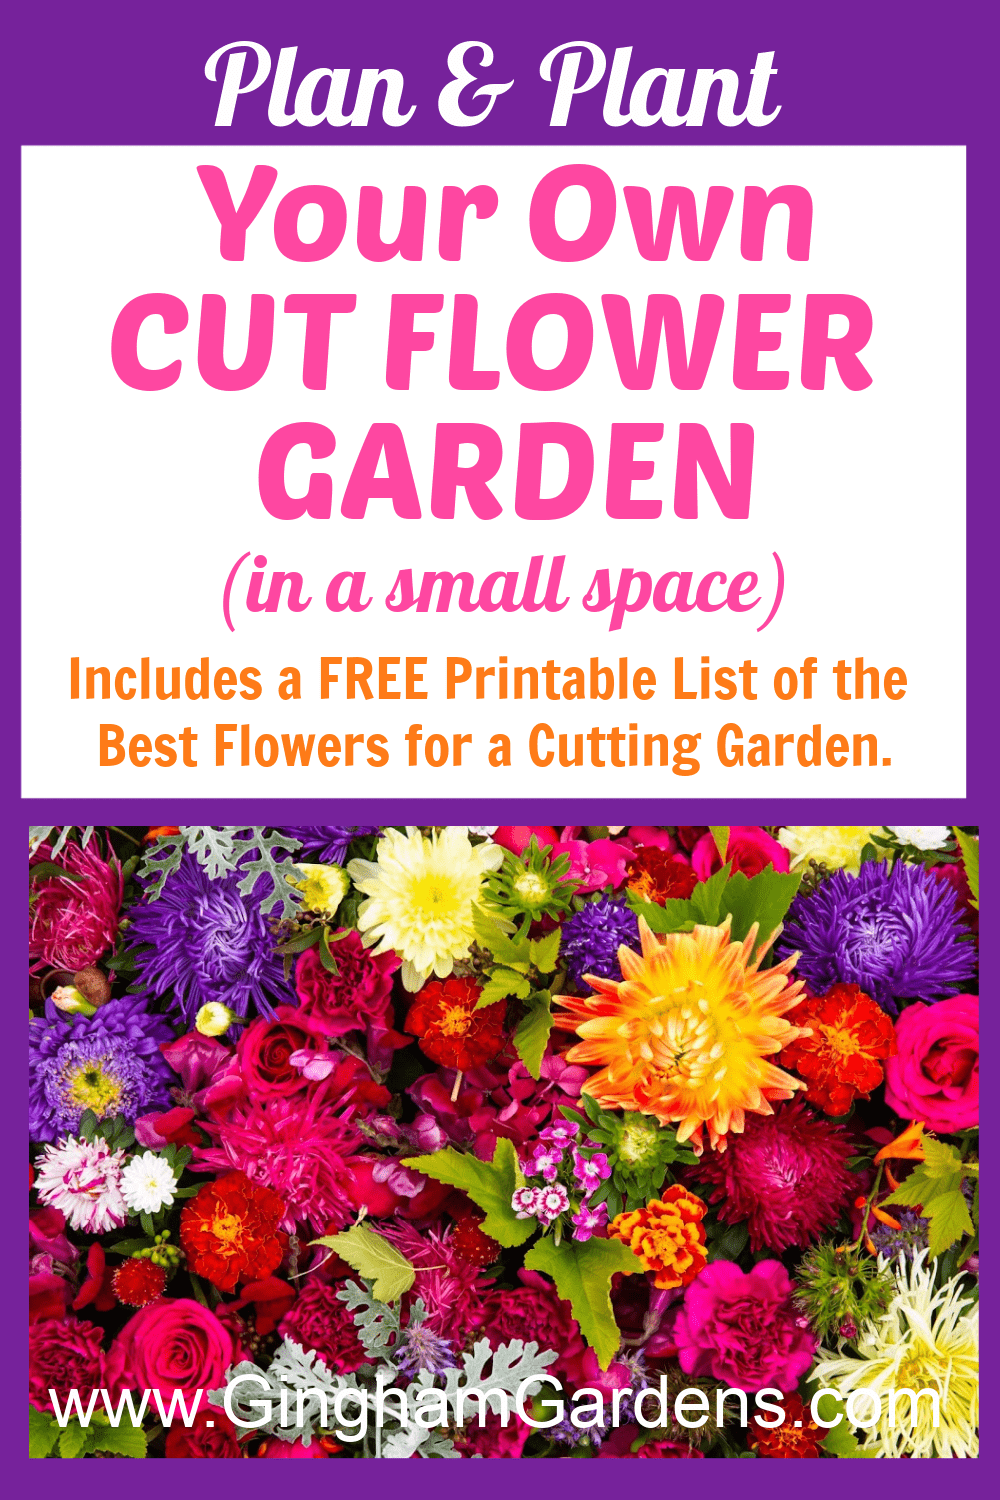 Image of Flowers with Text Overlay - Plan & Plant Your Own Cut Flower Garden